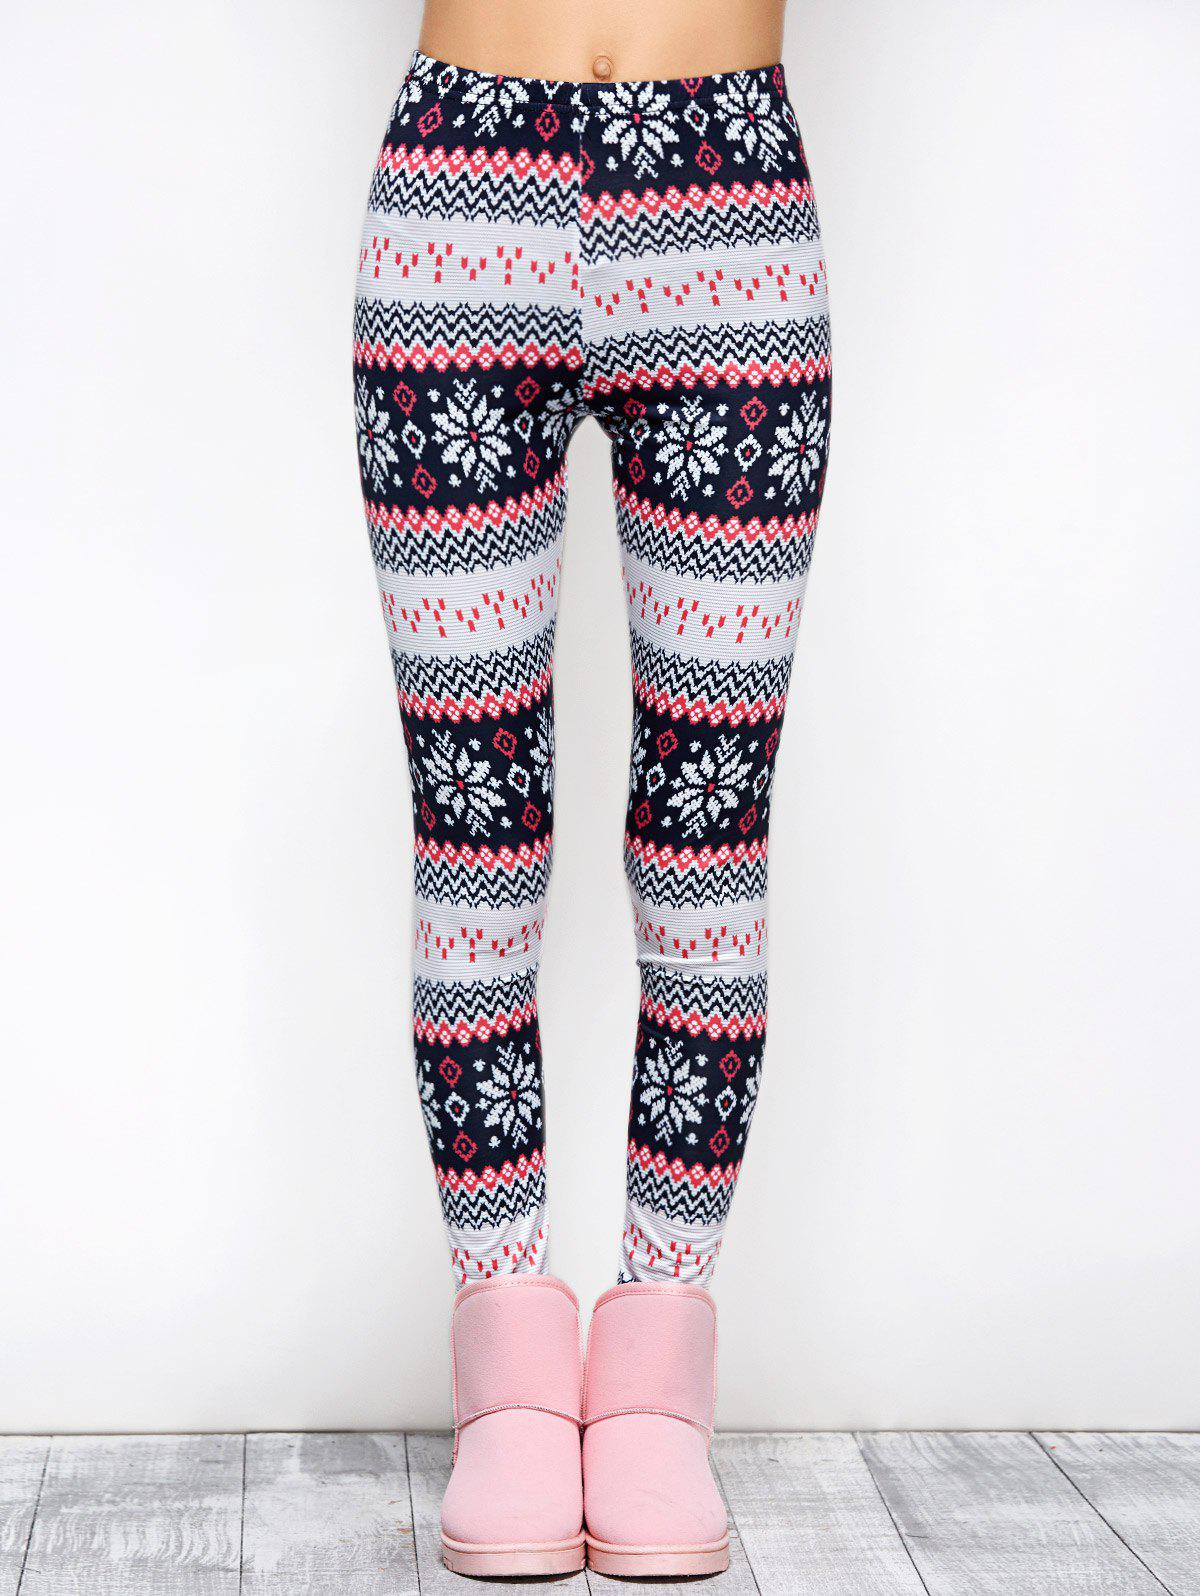 Best Tight Snowflake Print Christmas Leggings